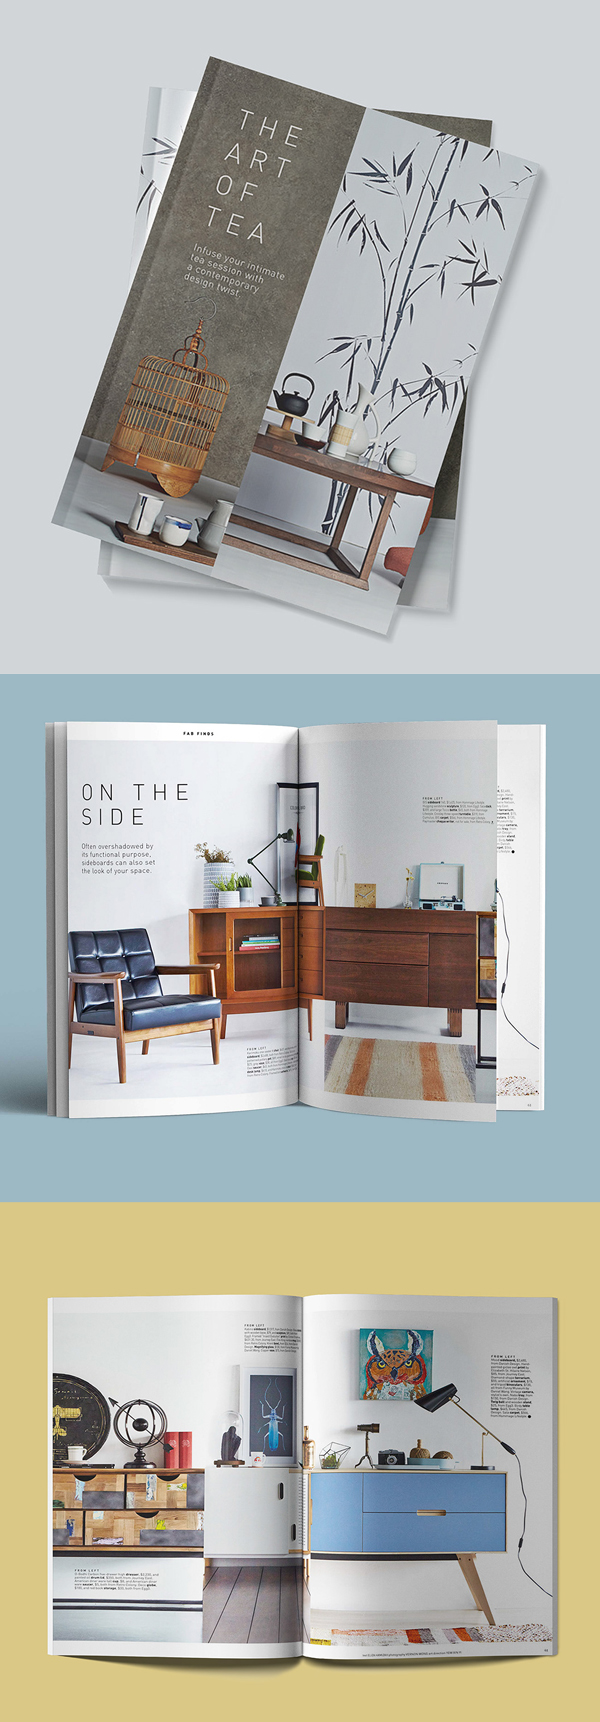 Free Book (Cover, Open, Side) PSD Mockups